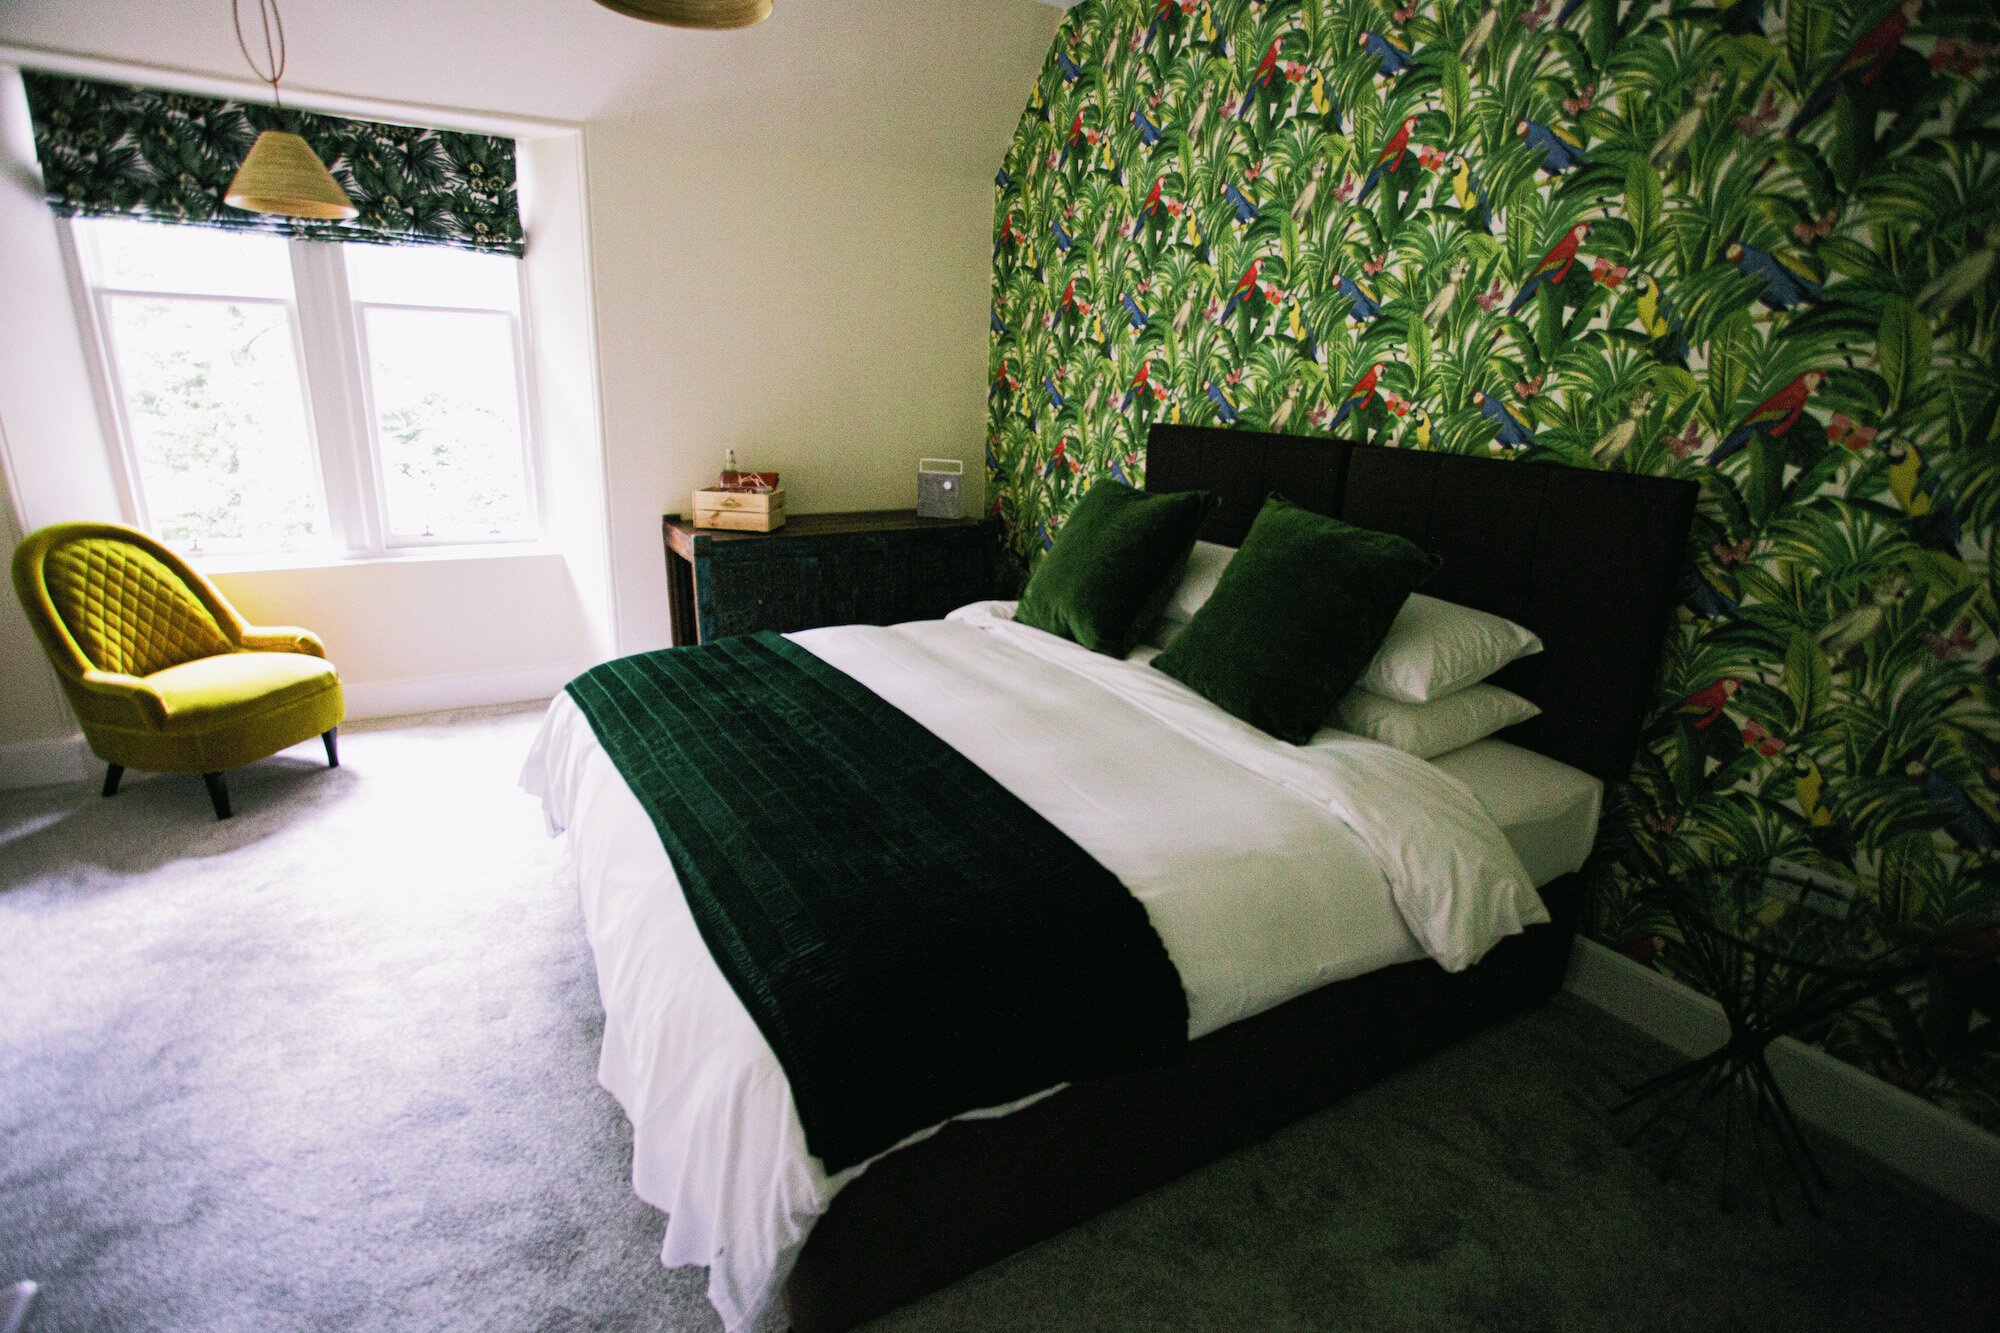 Otter - £975 per room (sleeps 2)Super King | Twin